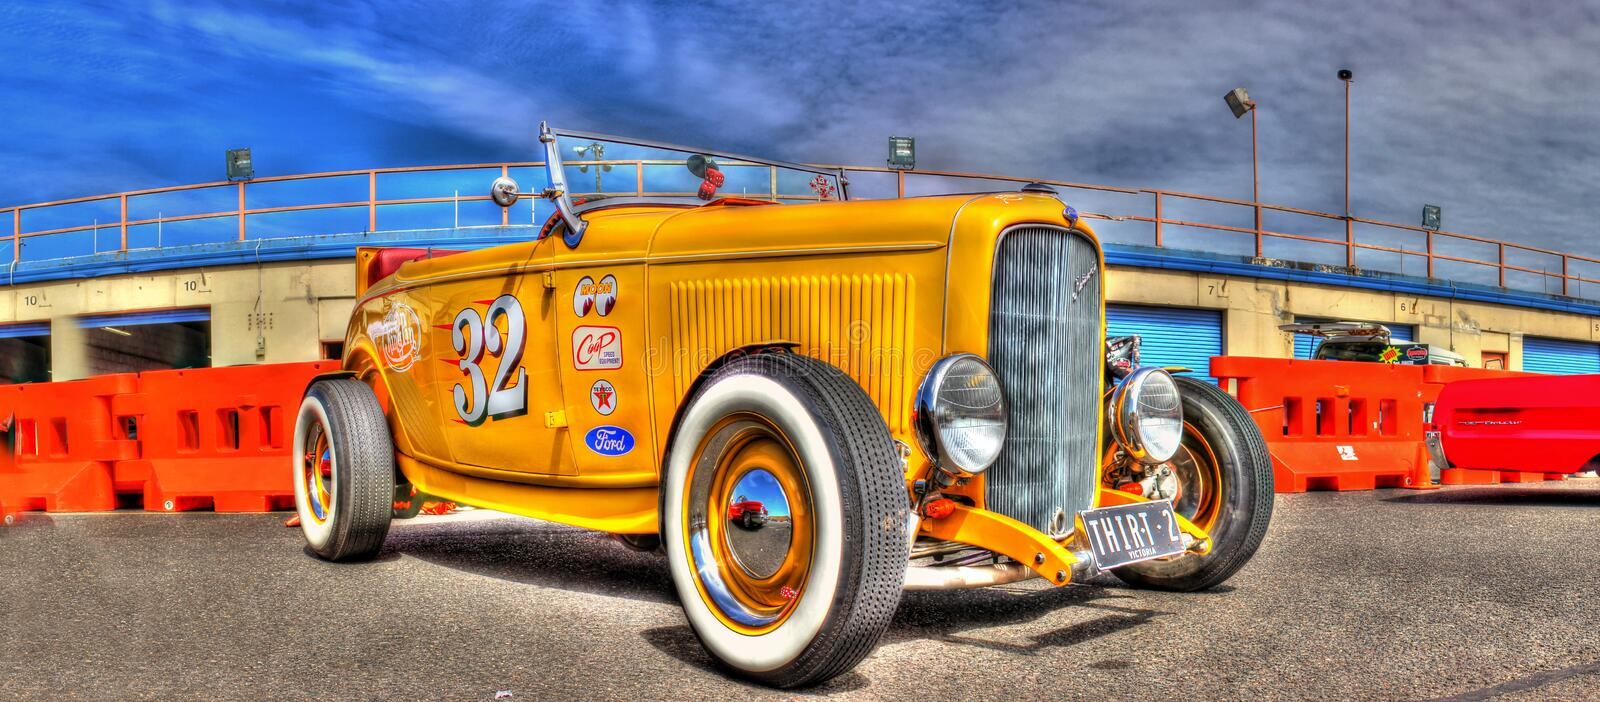 Vintage yellow hot rod. Custom designed yellow 1932 Ford Roadster converted to a hot rod on display at car show held at the Calder Park race track in Melbourne royalty free stock photo